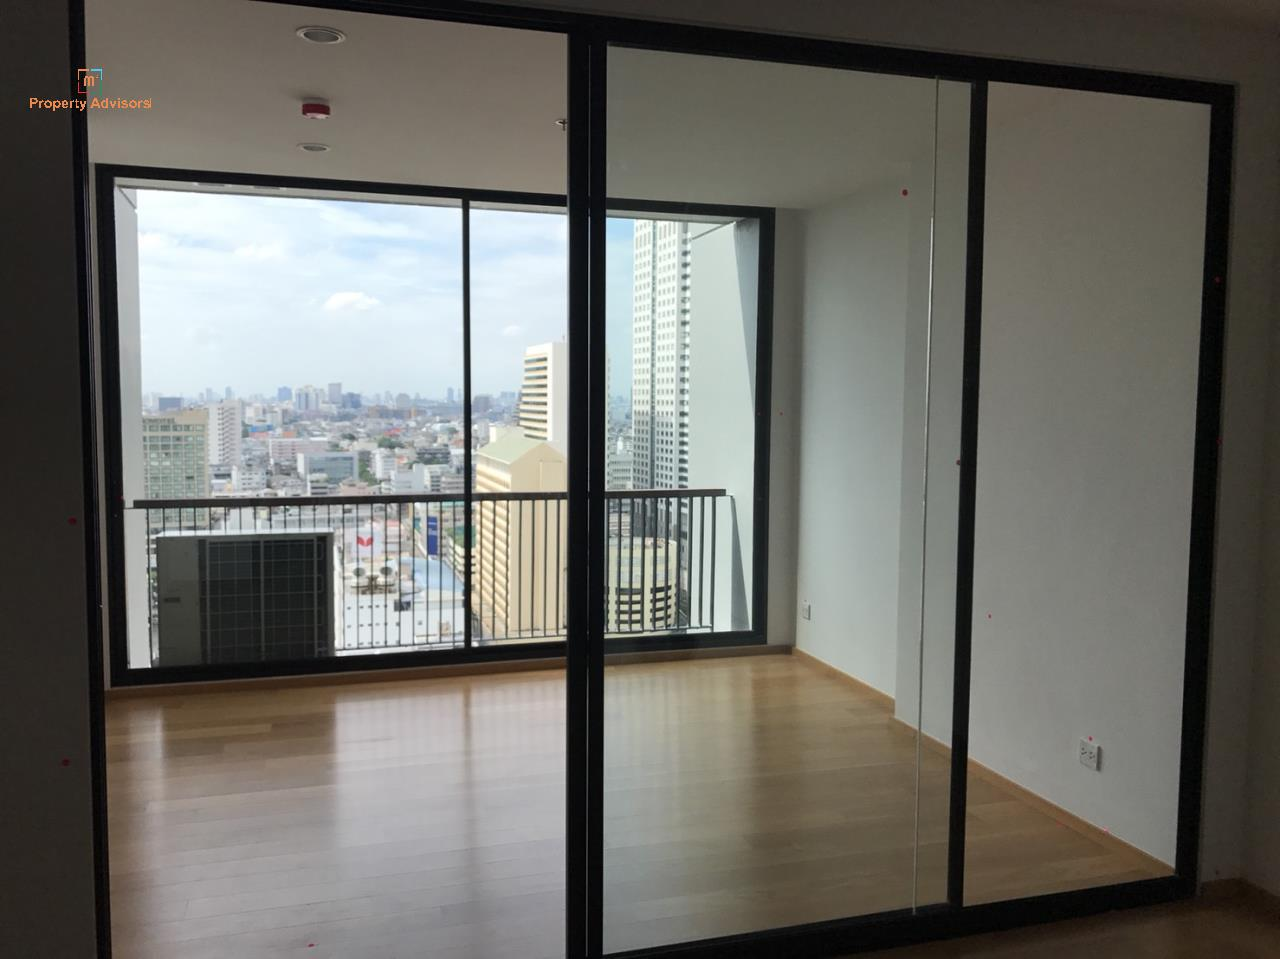 m2 Property Advisors Agency's Noble Revo Silom - New room 1